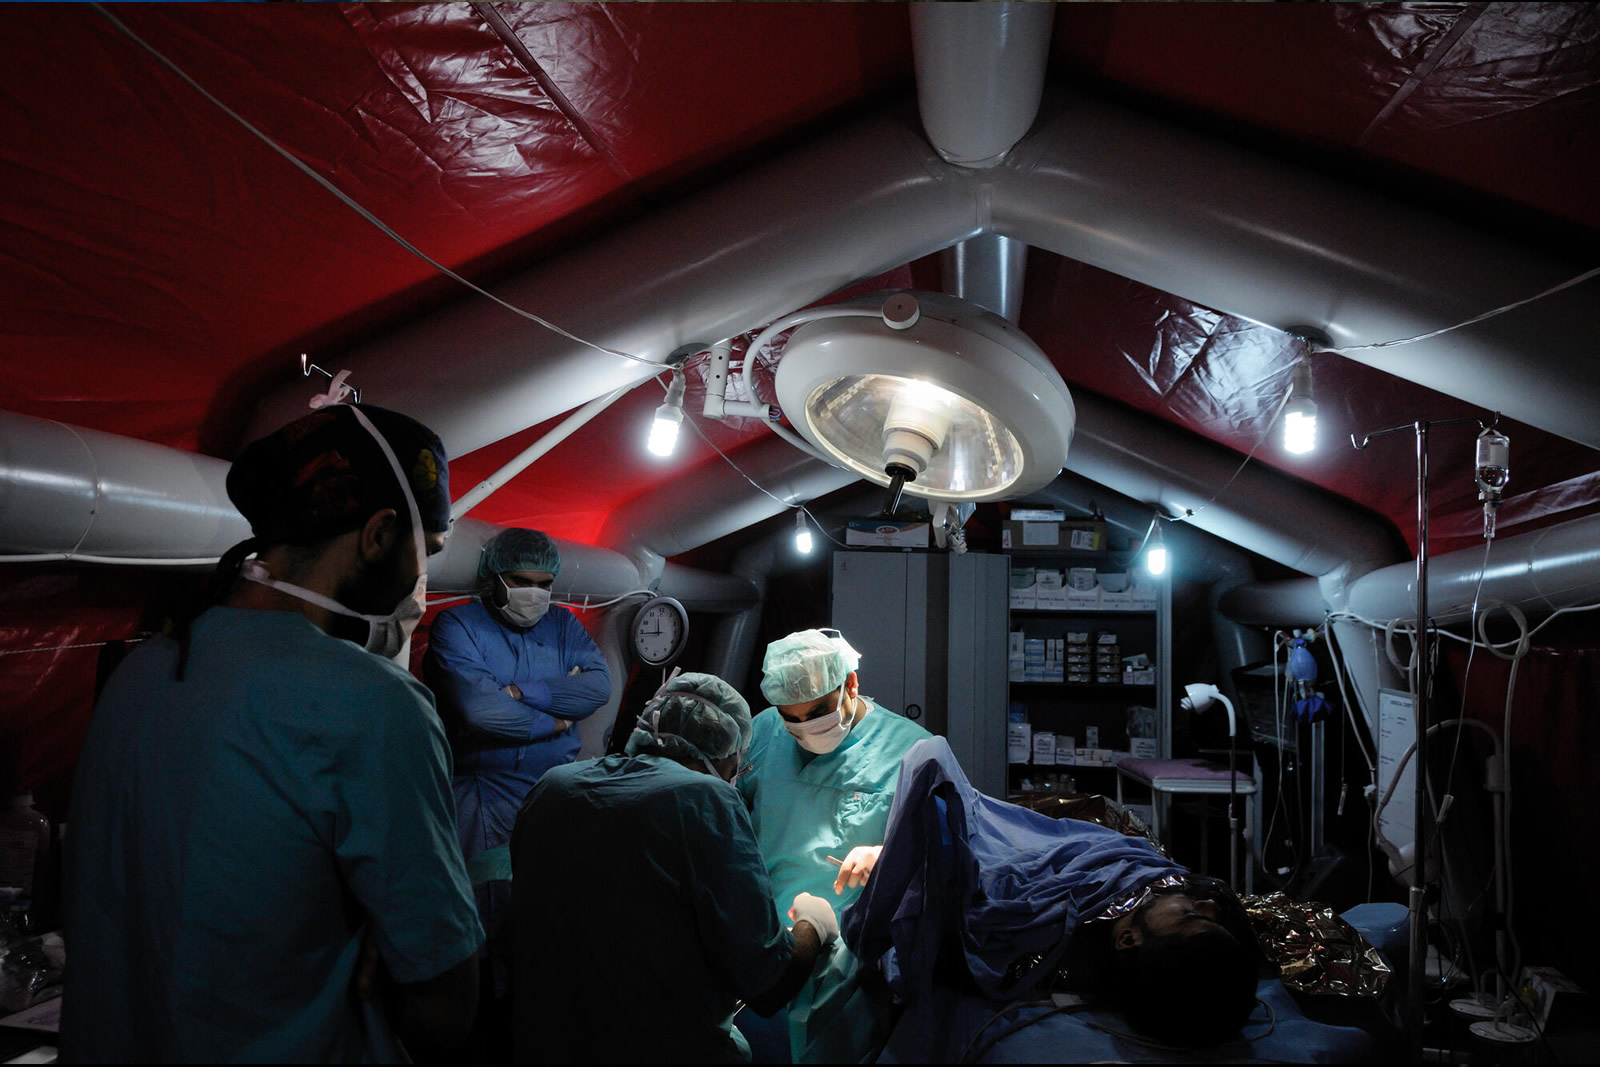 syria-10-yrs-2012-unlikely-place-hospital.jpg